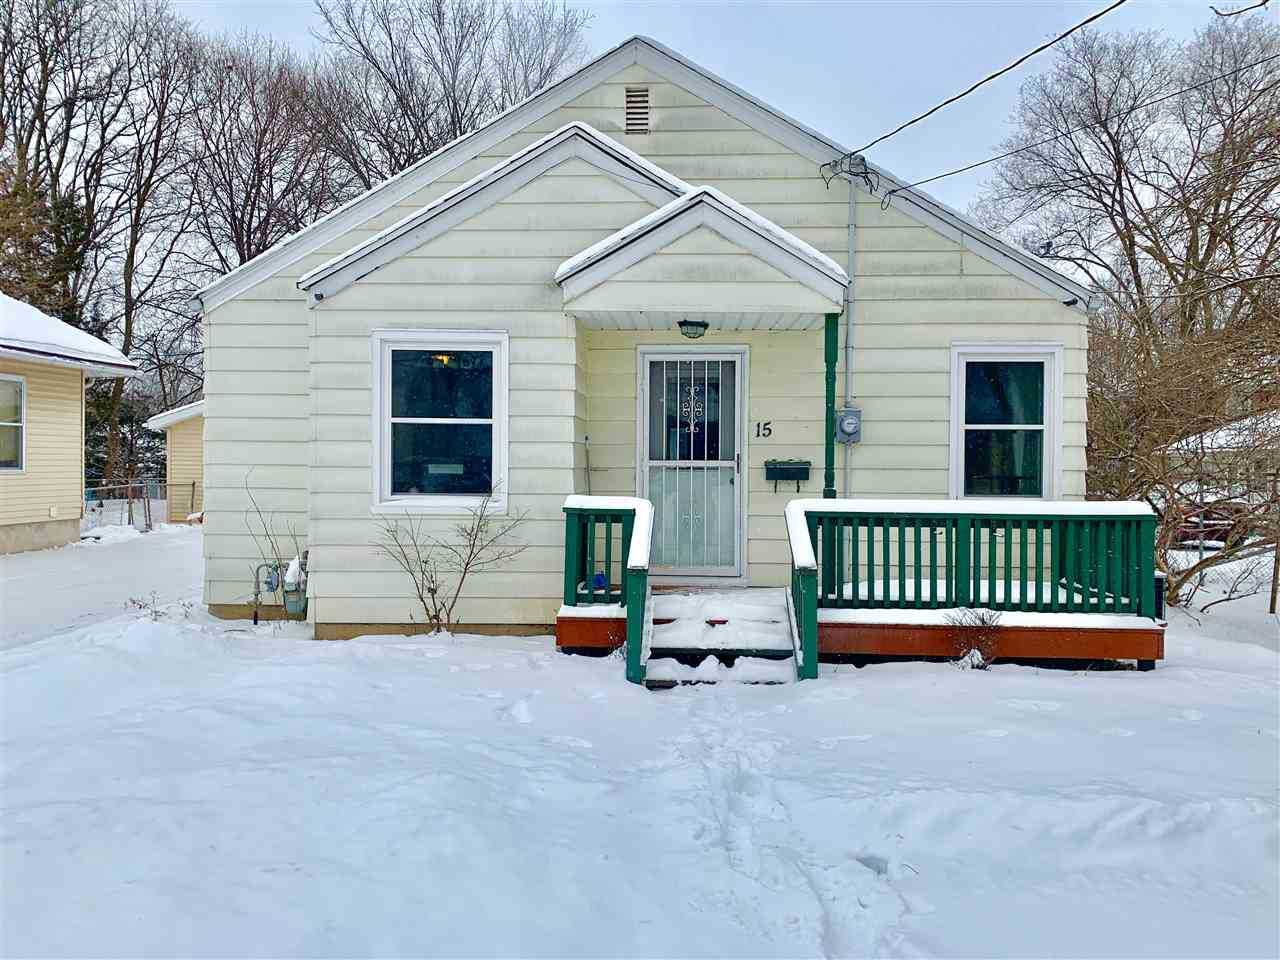 15 Powers Ave Madison, WI 53714 | MLS 1848701 Photo 1